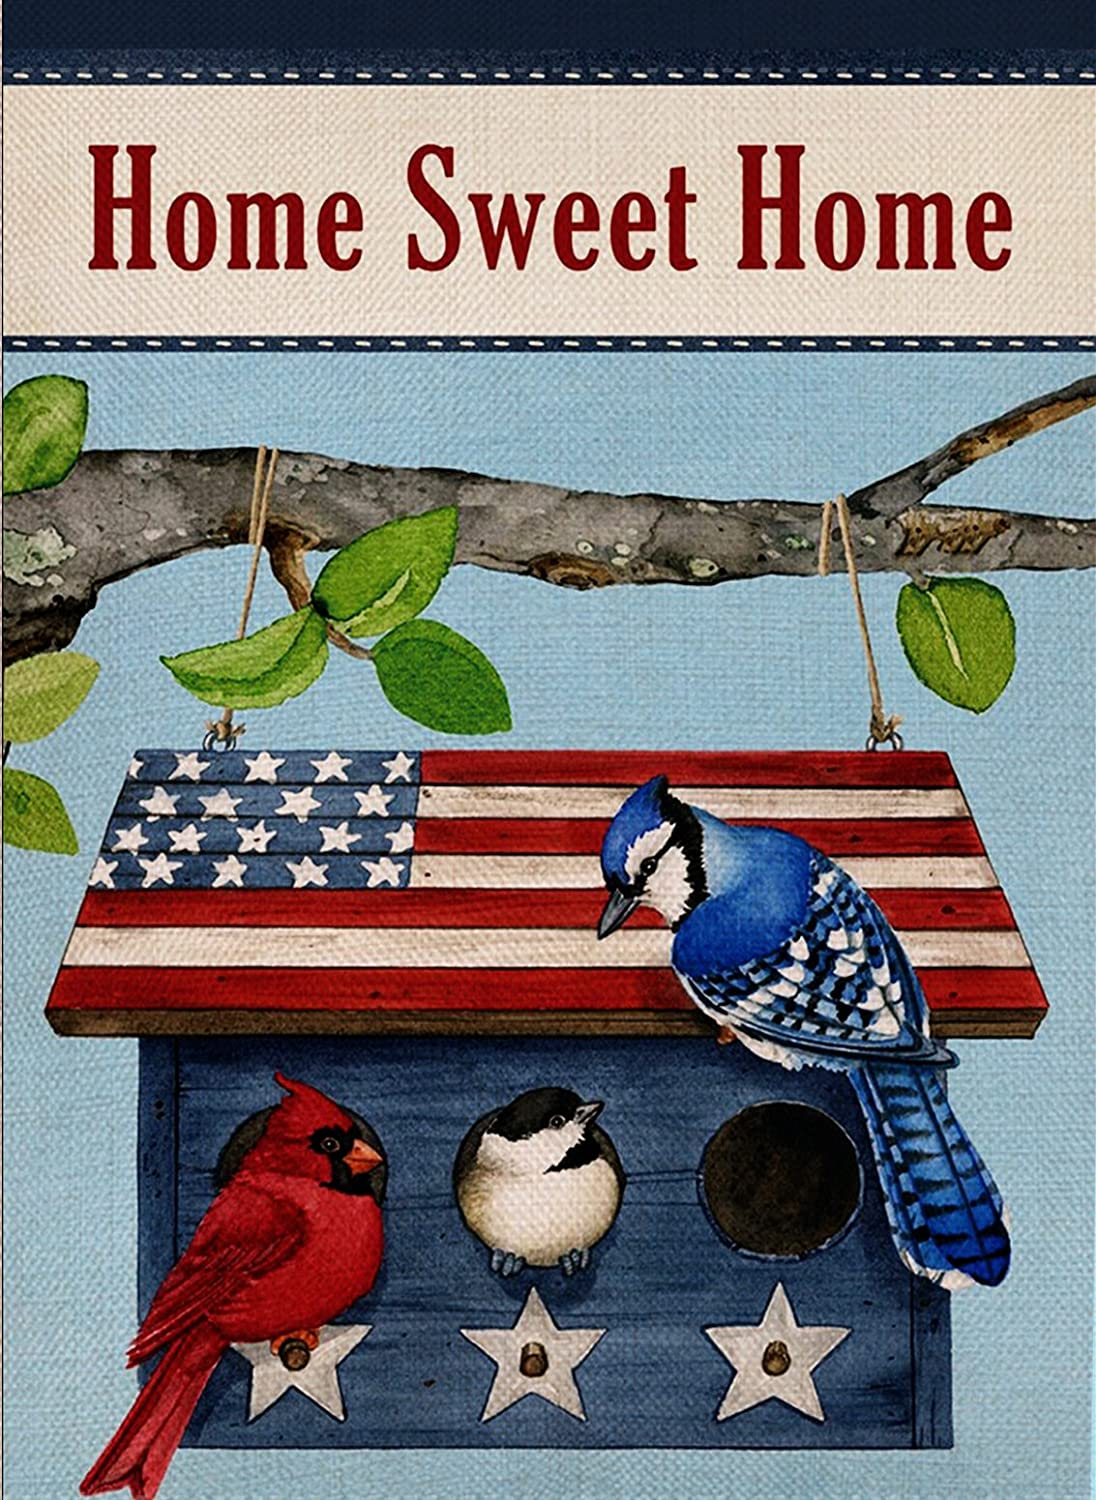 Dyrenson Decorative Outdoor Home Sweet Home Quote Garden Flag Double Sided, Red Cardinal Blue Jay House Yard Flag, Patriotic Garden Yard Decorations, Seasonal Outdoor Flag 12 x 18 for Spring Summer